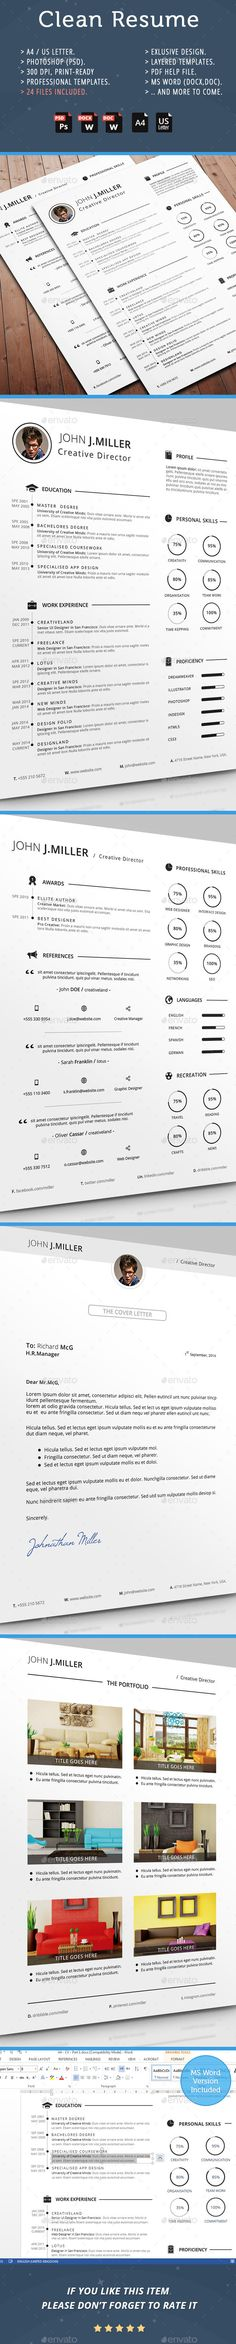 50 Best Resume Templates For 2018 - 50 #bestof2017 #resumetemplate - awesome resumes templates